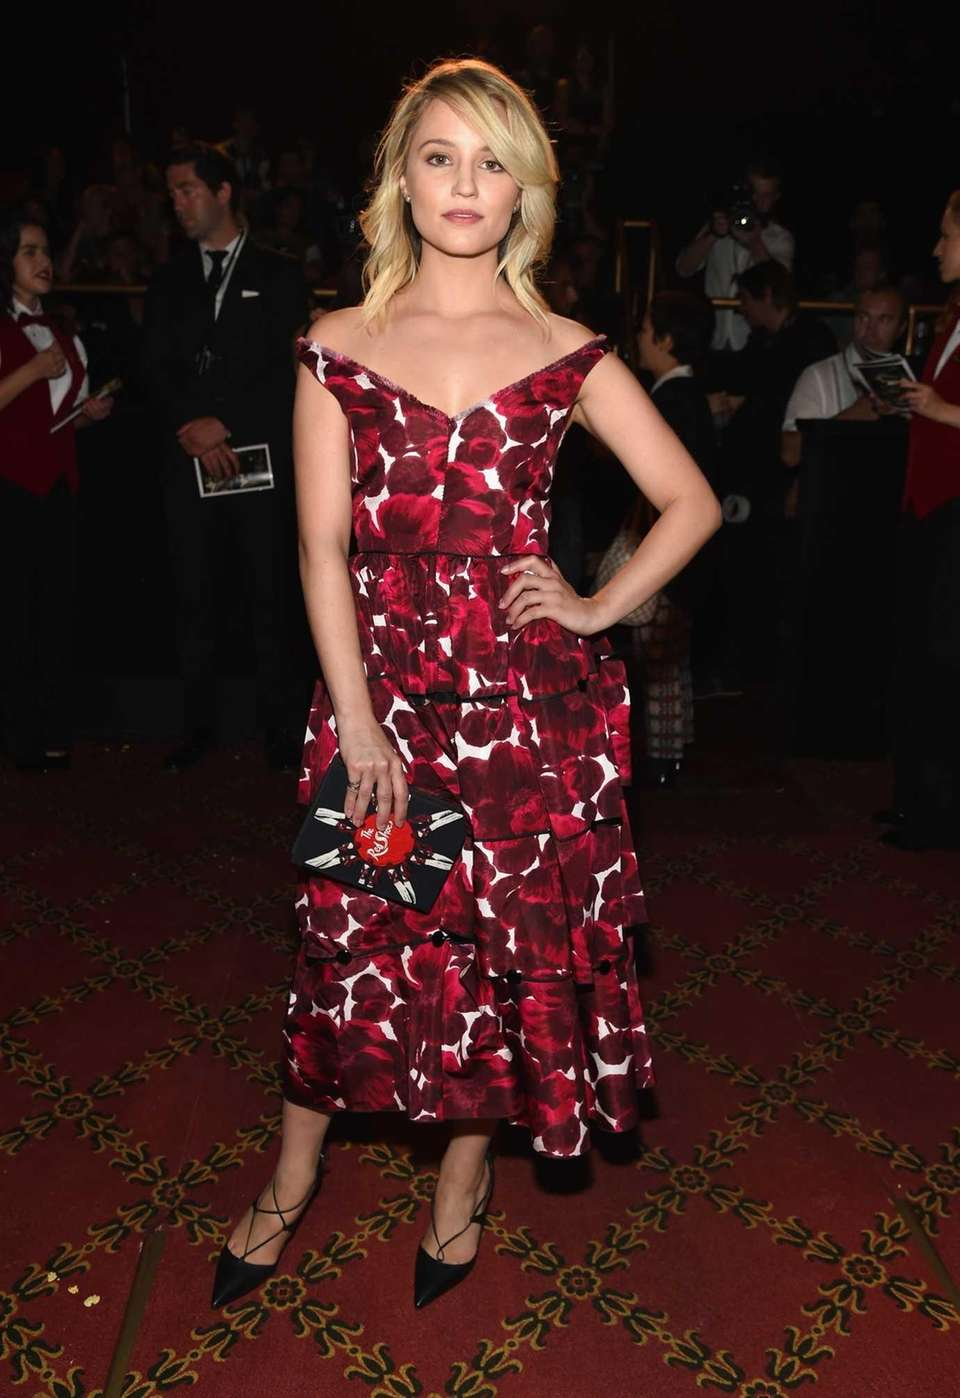 Dianna Agron attends the Marc Jacobs Spring 2016